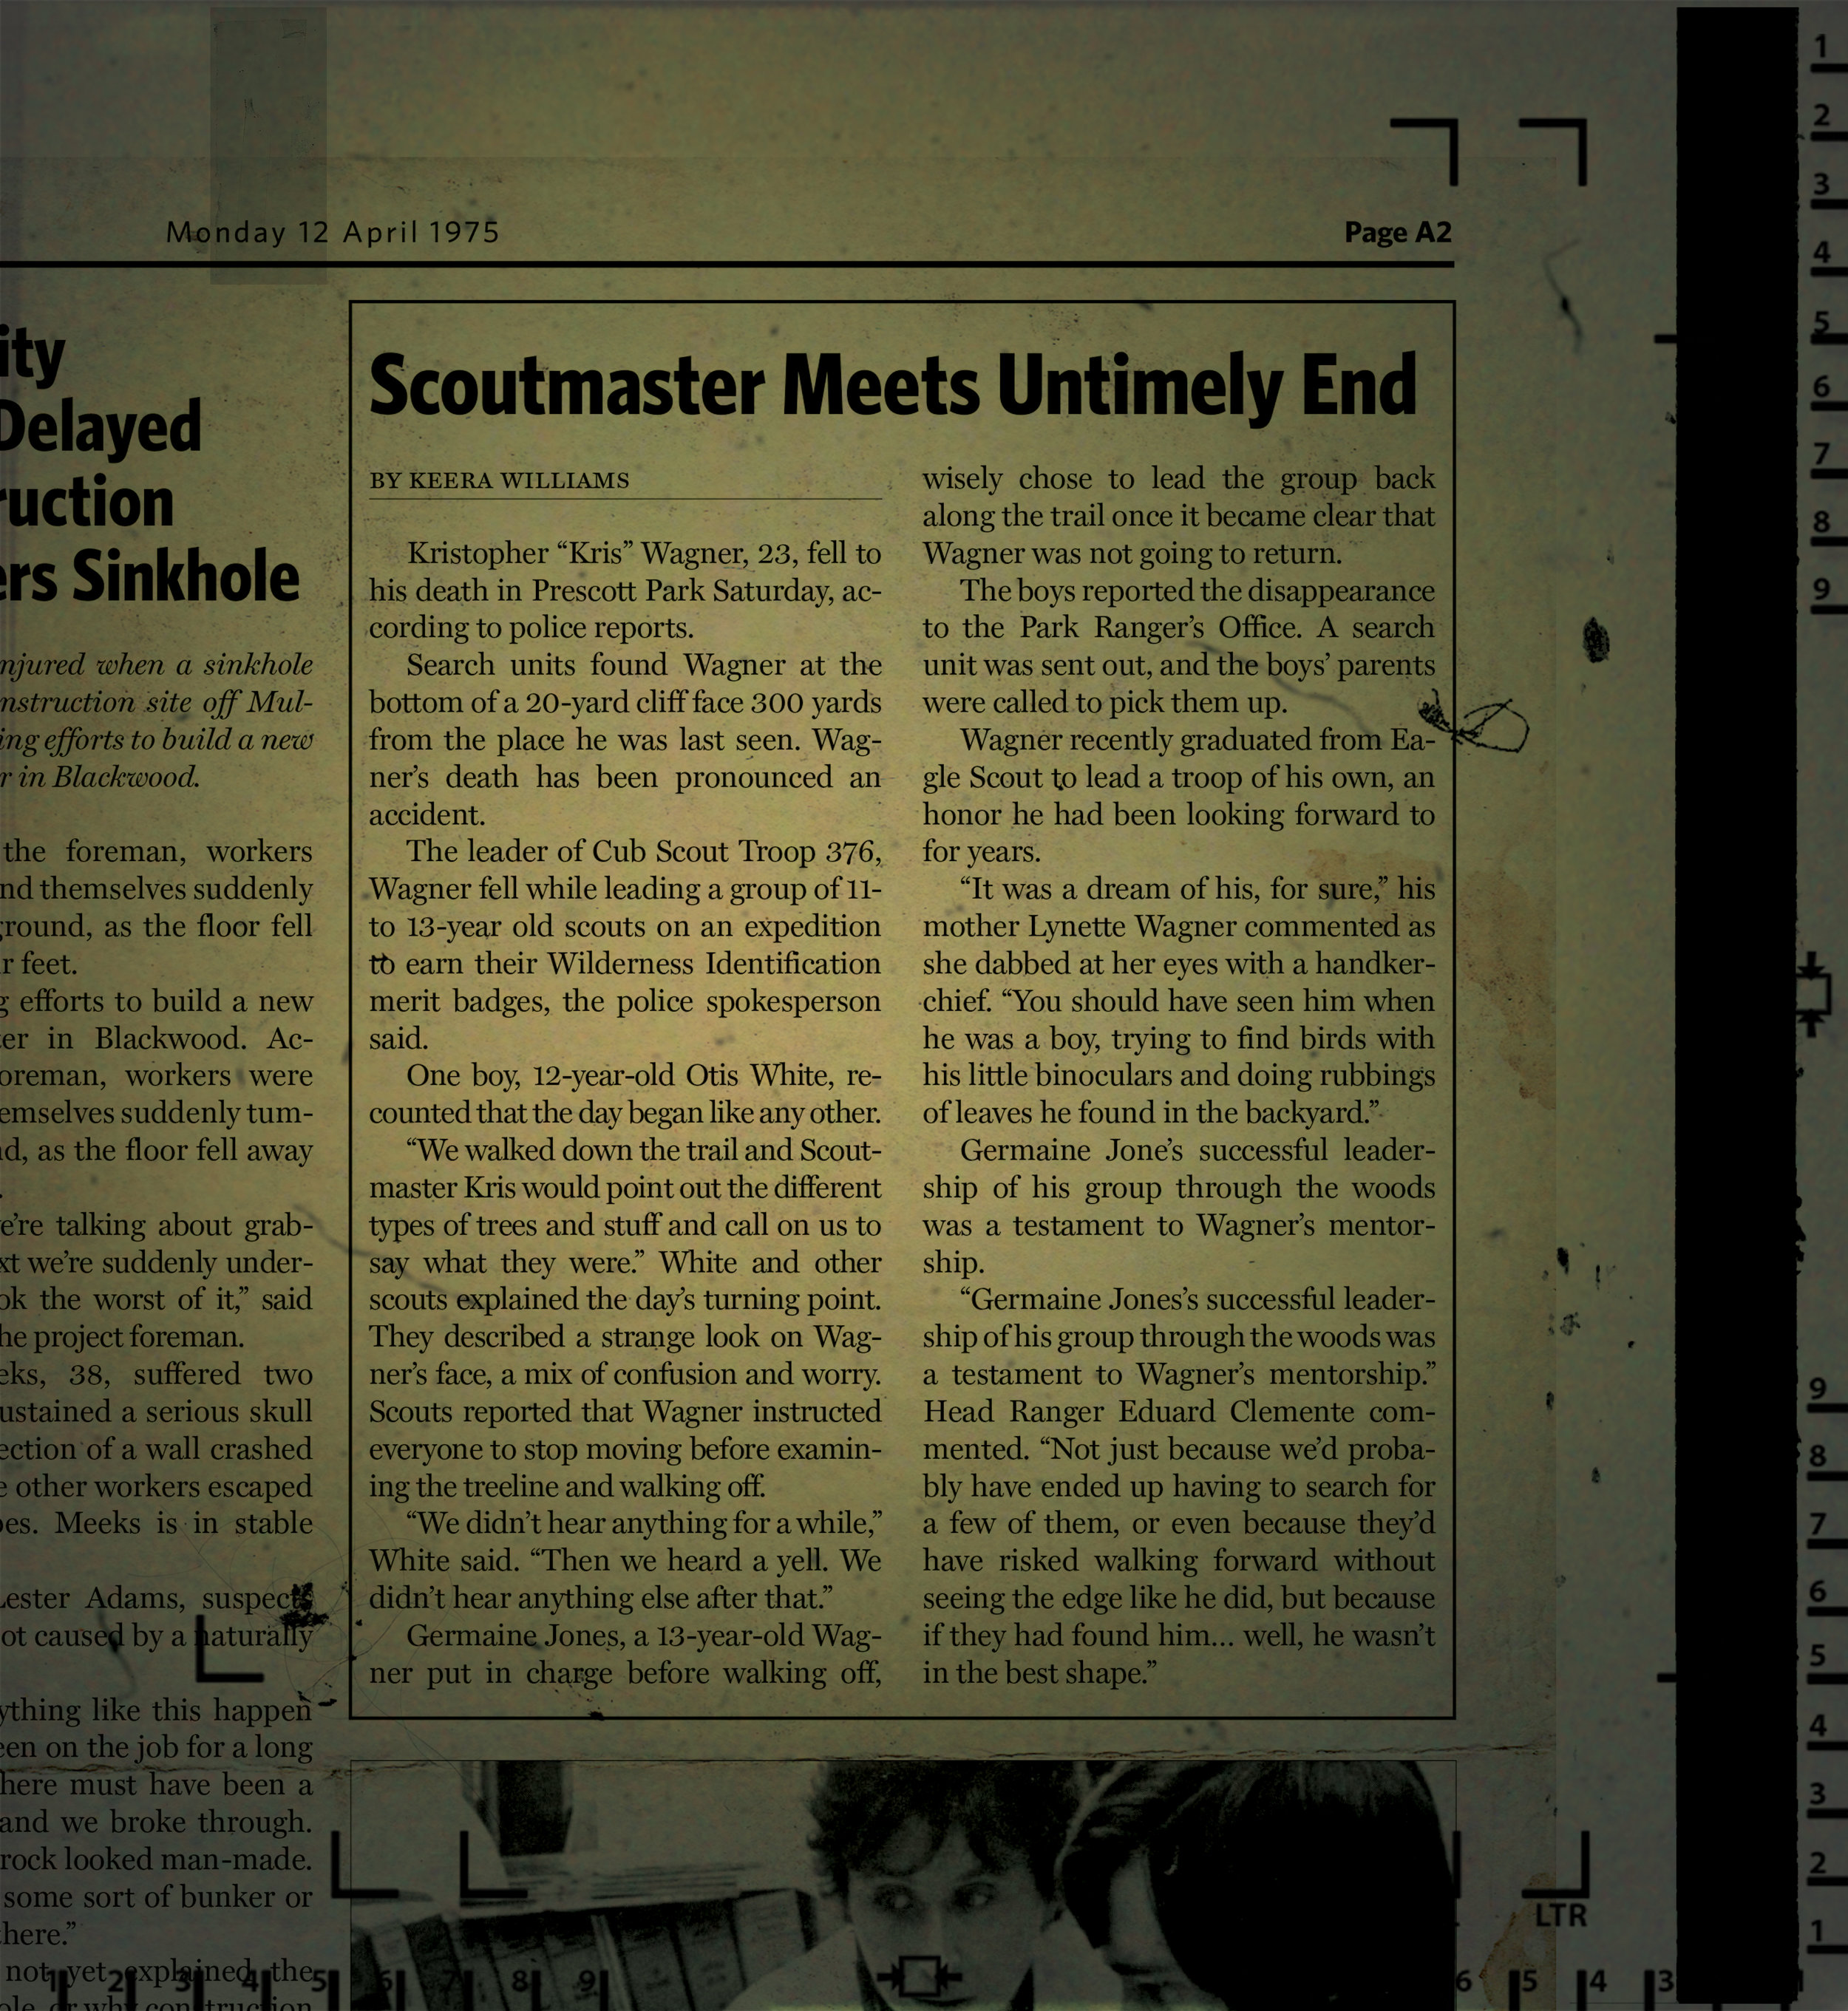 2 - The end of the Scoutmaster.jpg